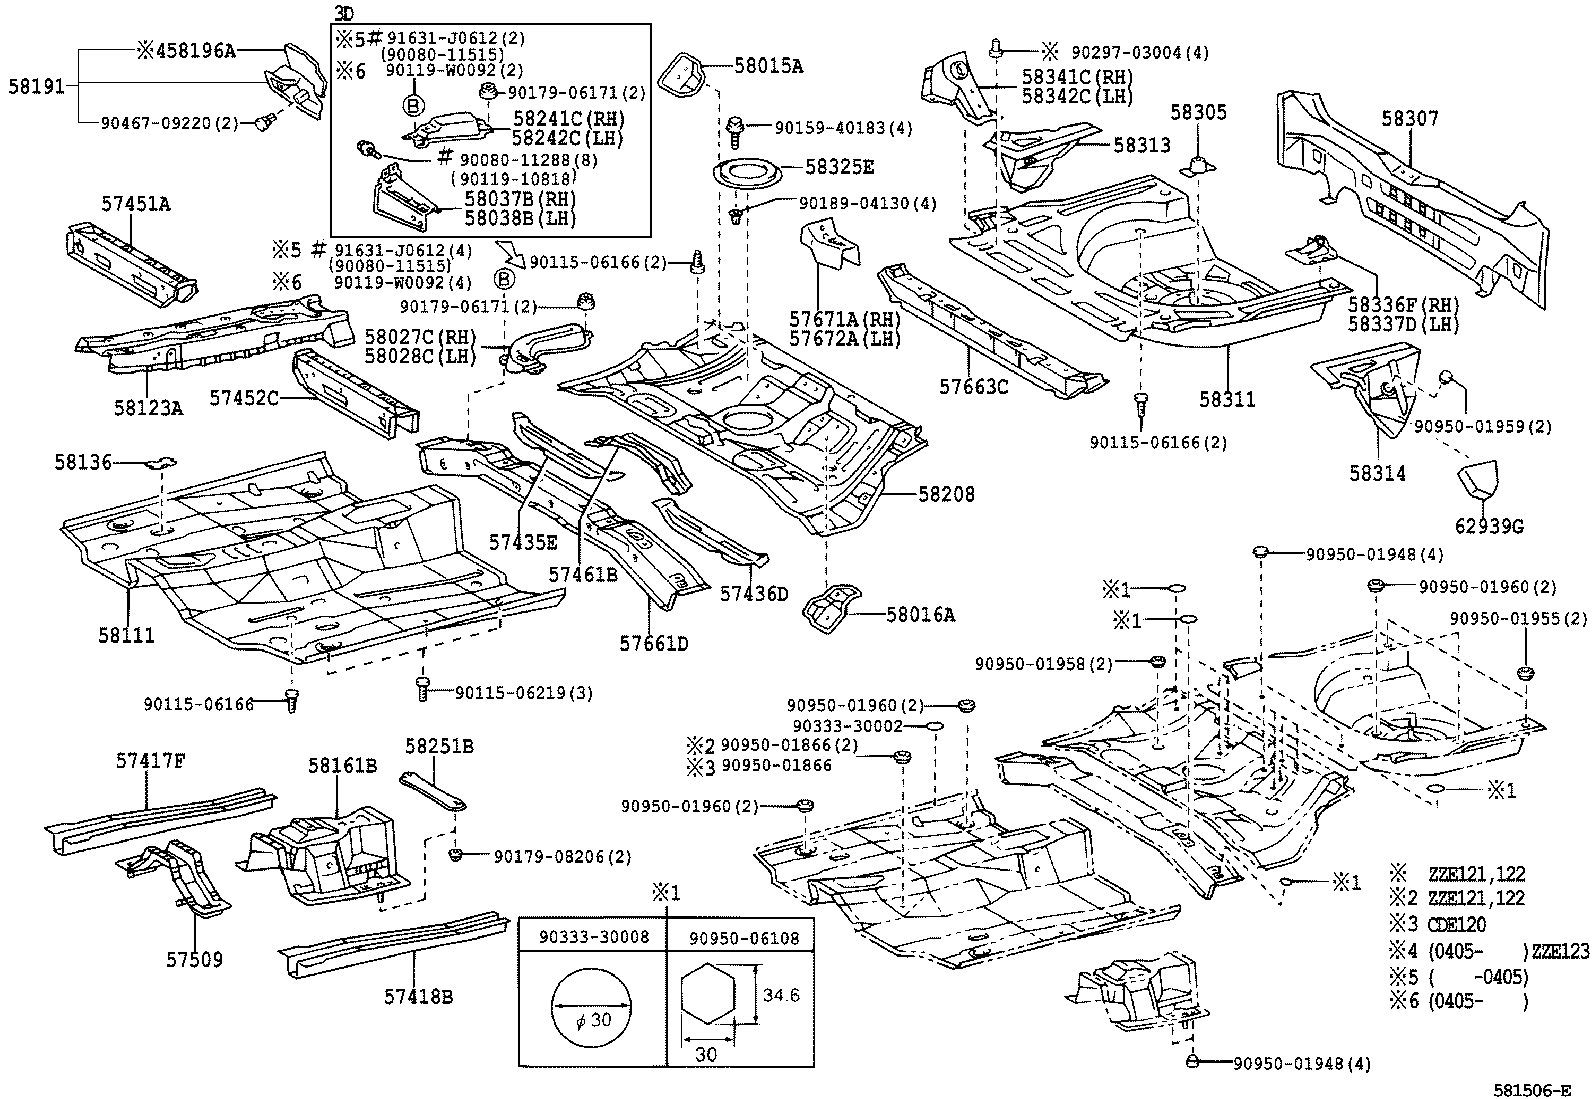 1987 Jaguar Xj6 Engine Diagram. Jaguar. Auto Wiring Diagram